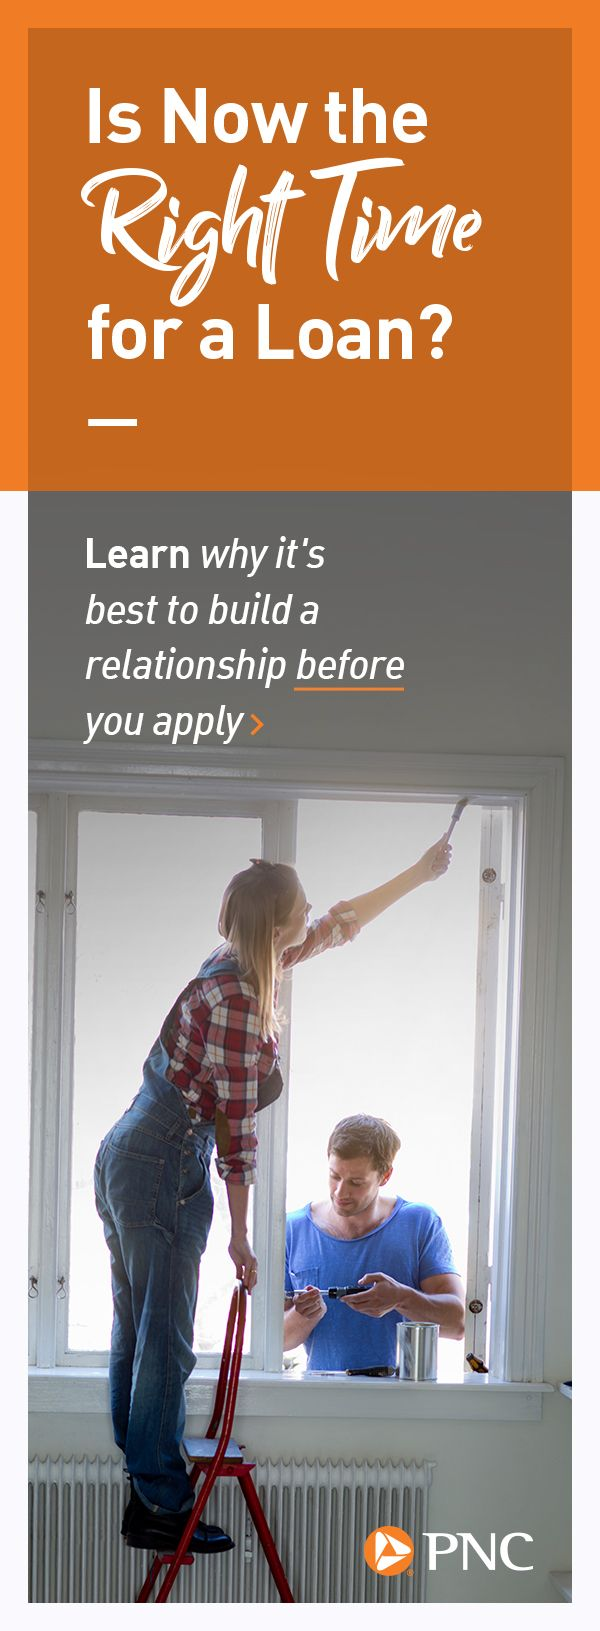 It may surprise you, but it's helpful to apply for a loan